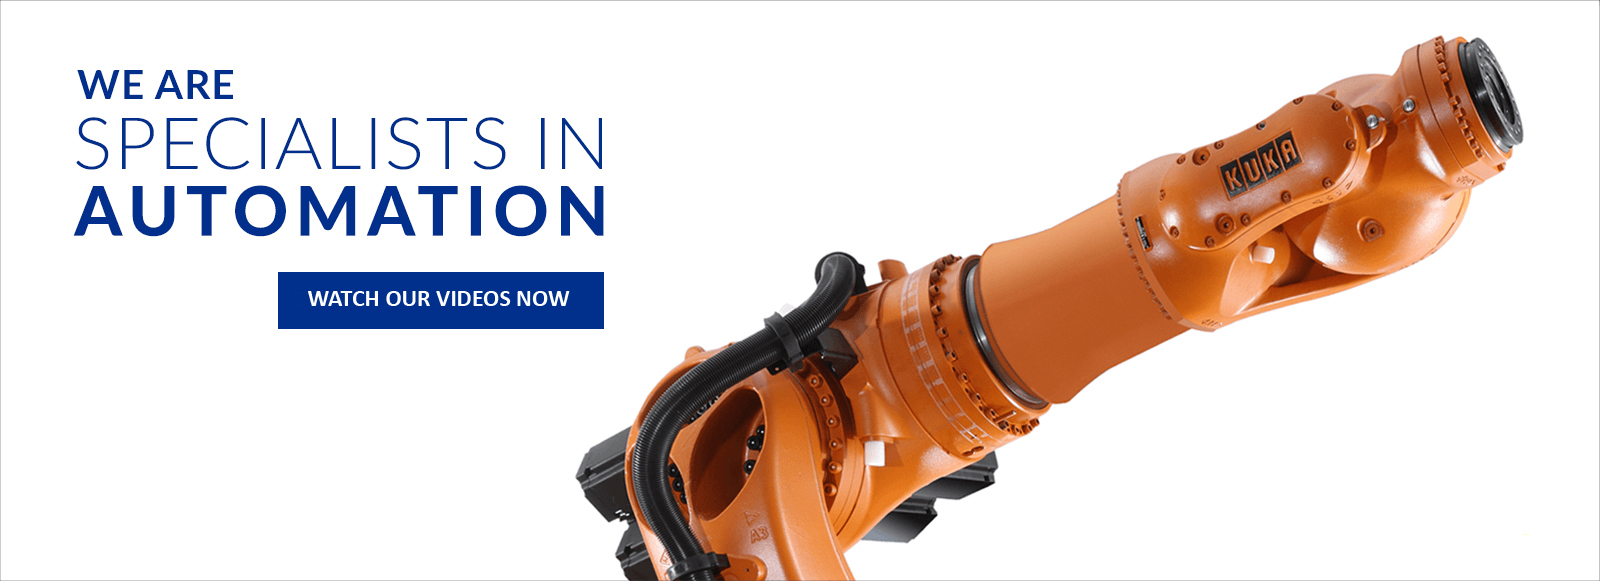 Specialists in Automation